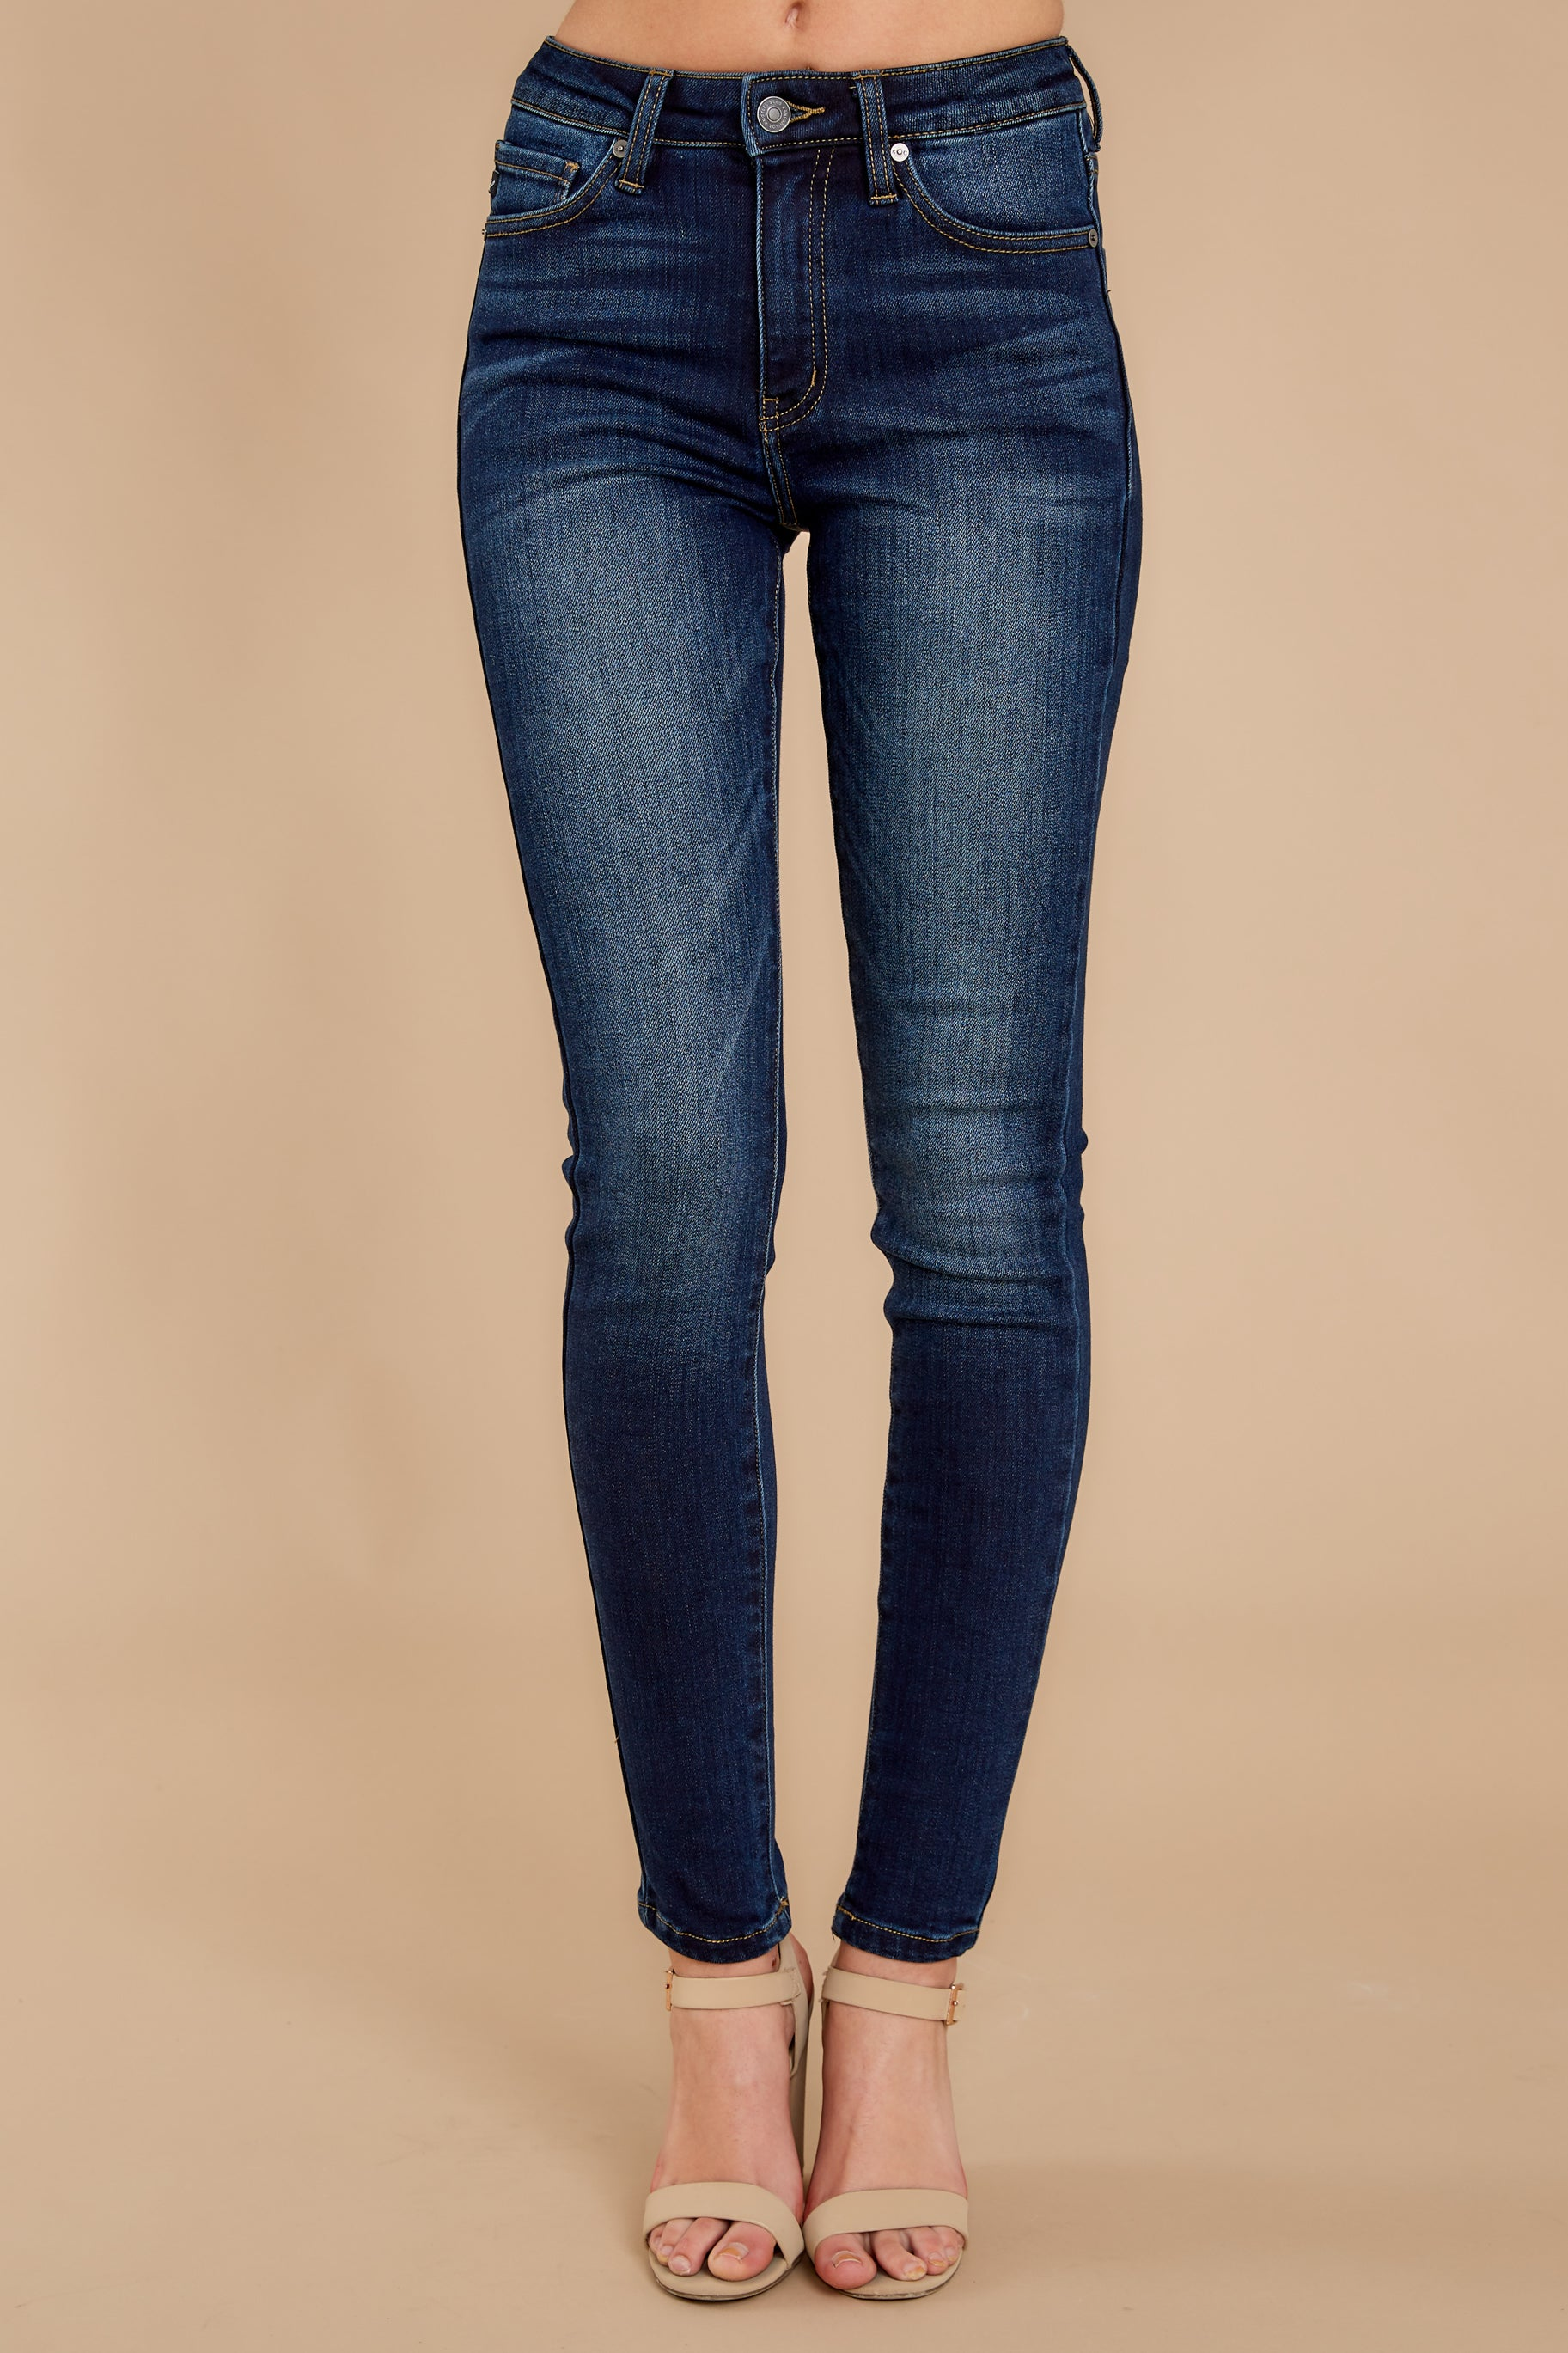 2 Perfect Aim Dark Wash Skinny Jeans at reddressboutique.com